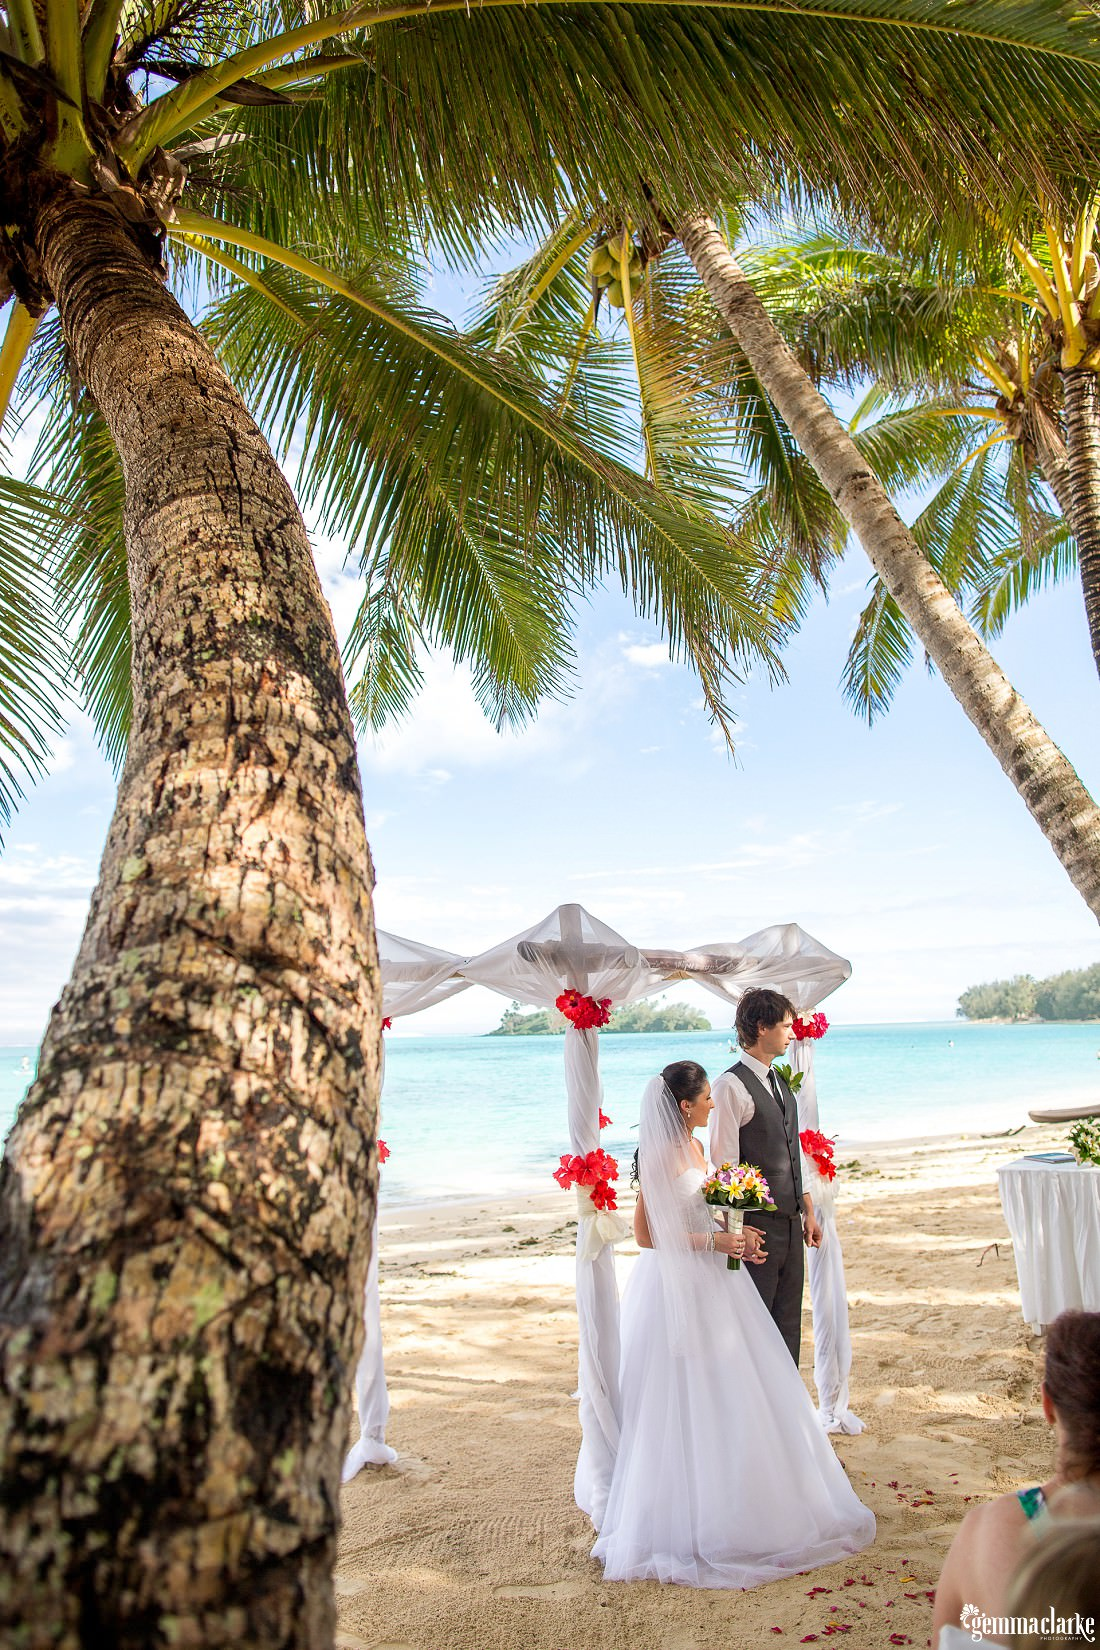 gemmaclarkephotography_south-pacific-destination-wedding_island-wedding_natalie-and-alex_0033